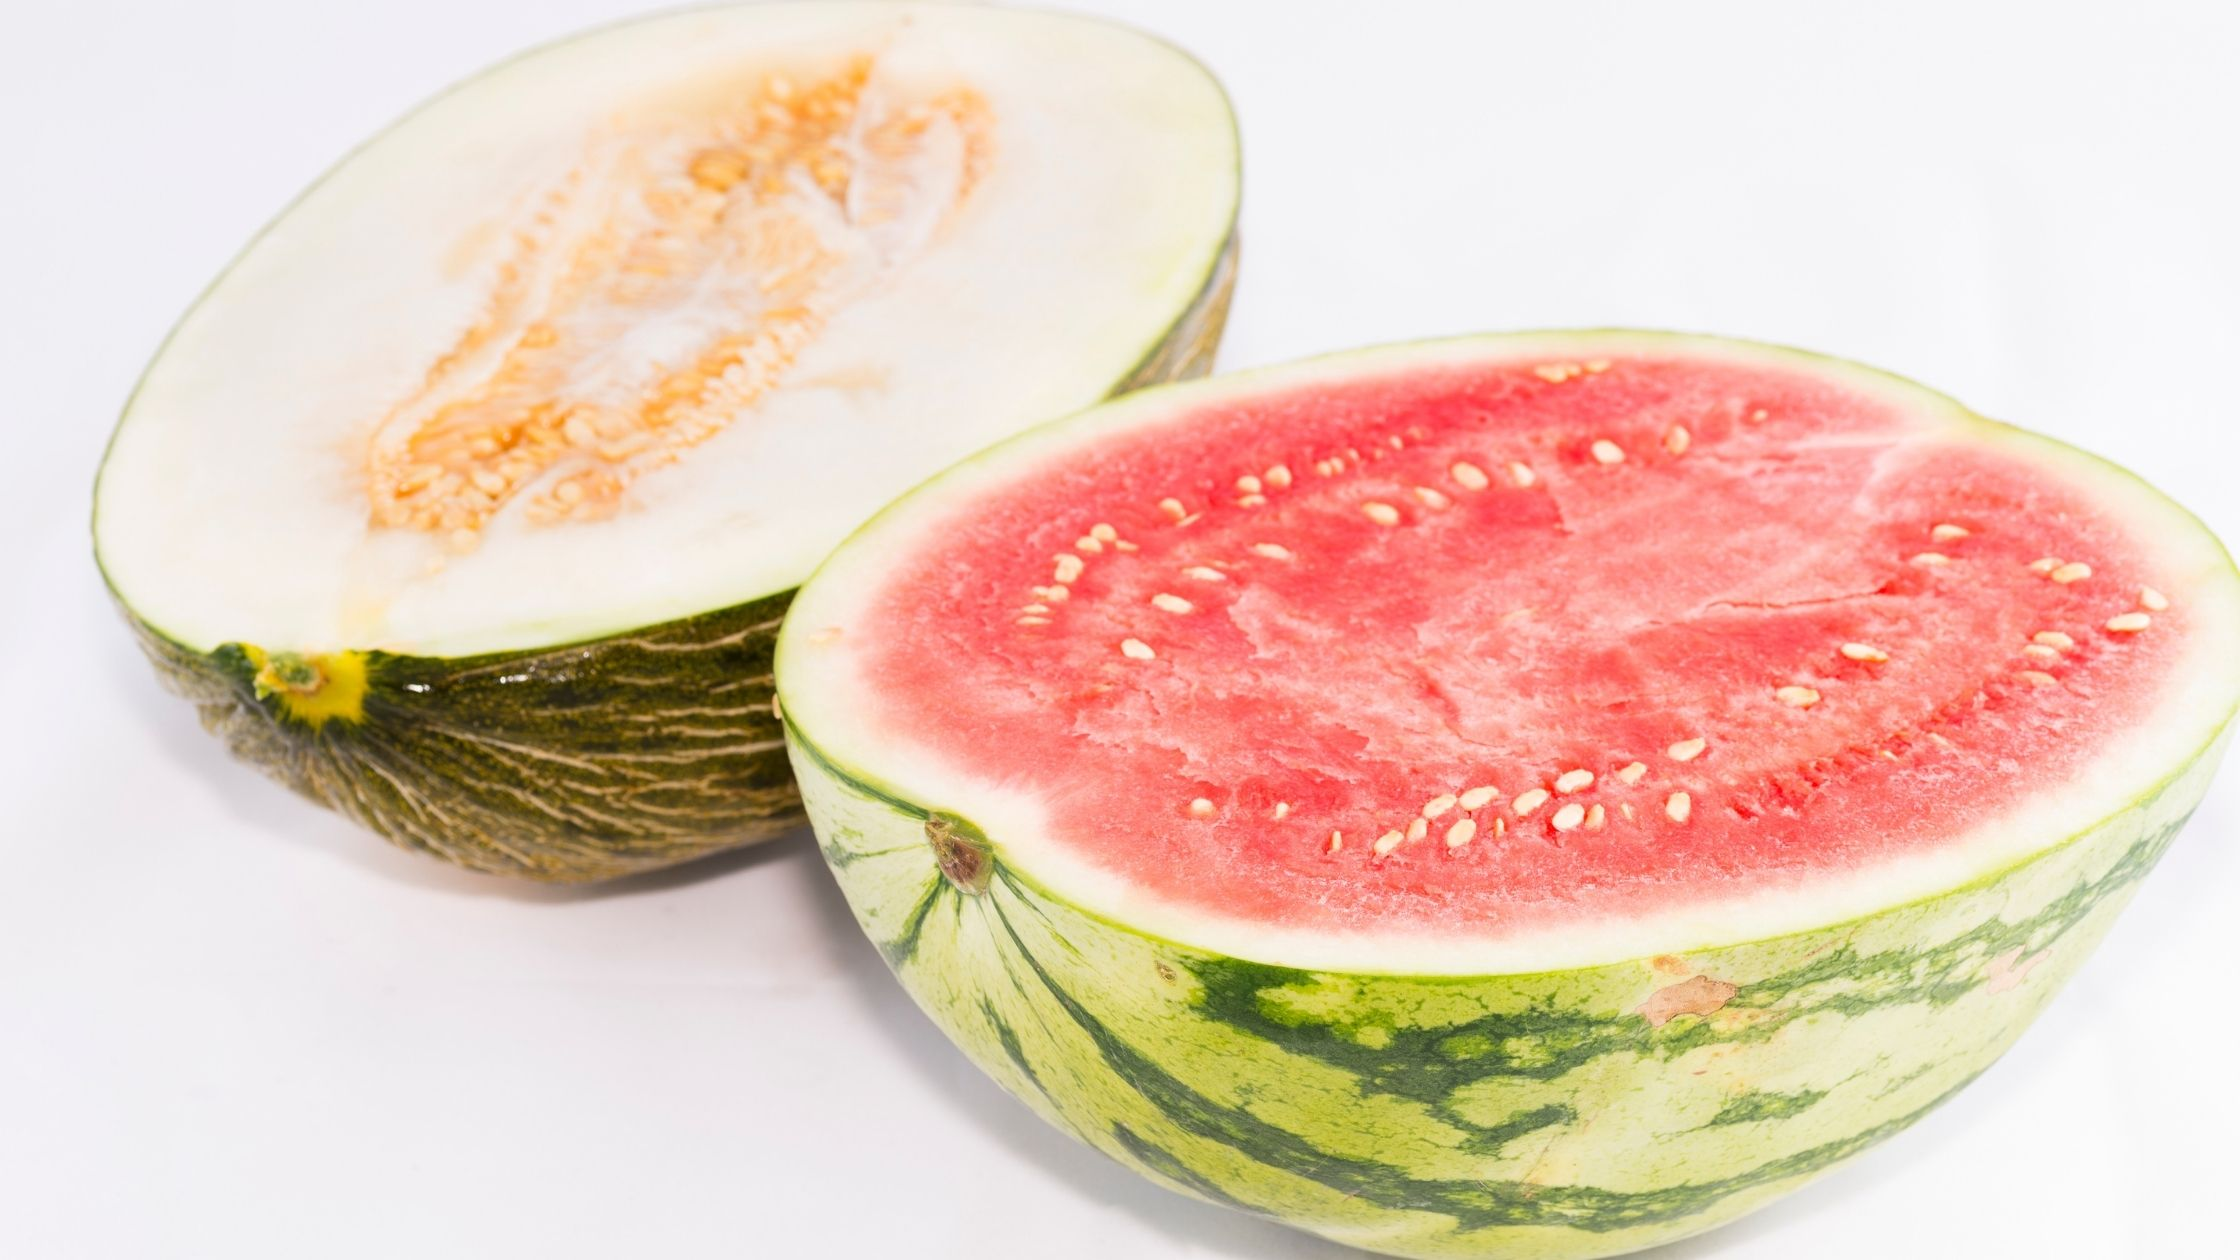 Can You Eat Melon and Watermelon on Keto Diet